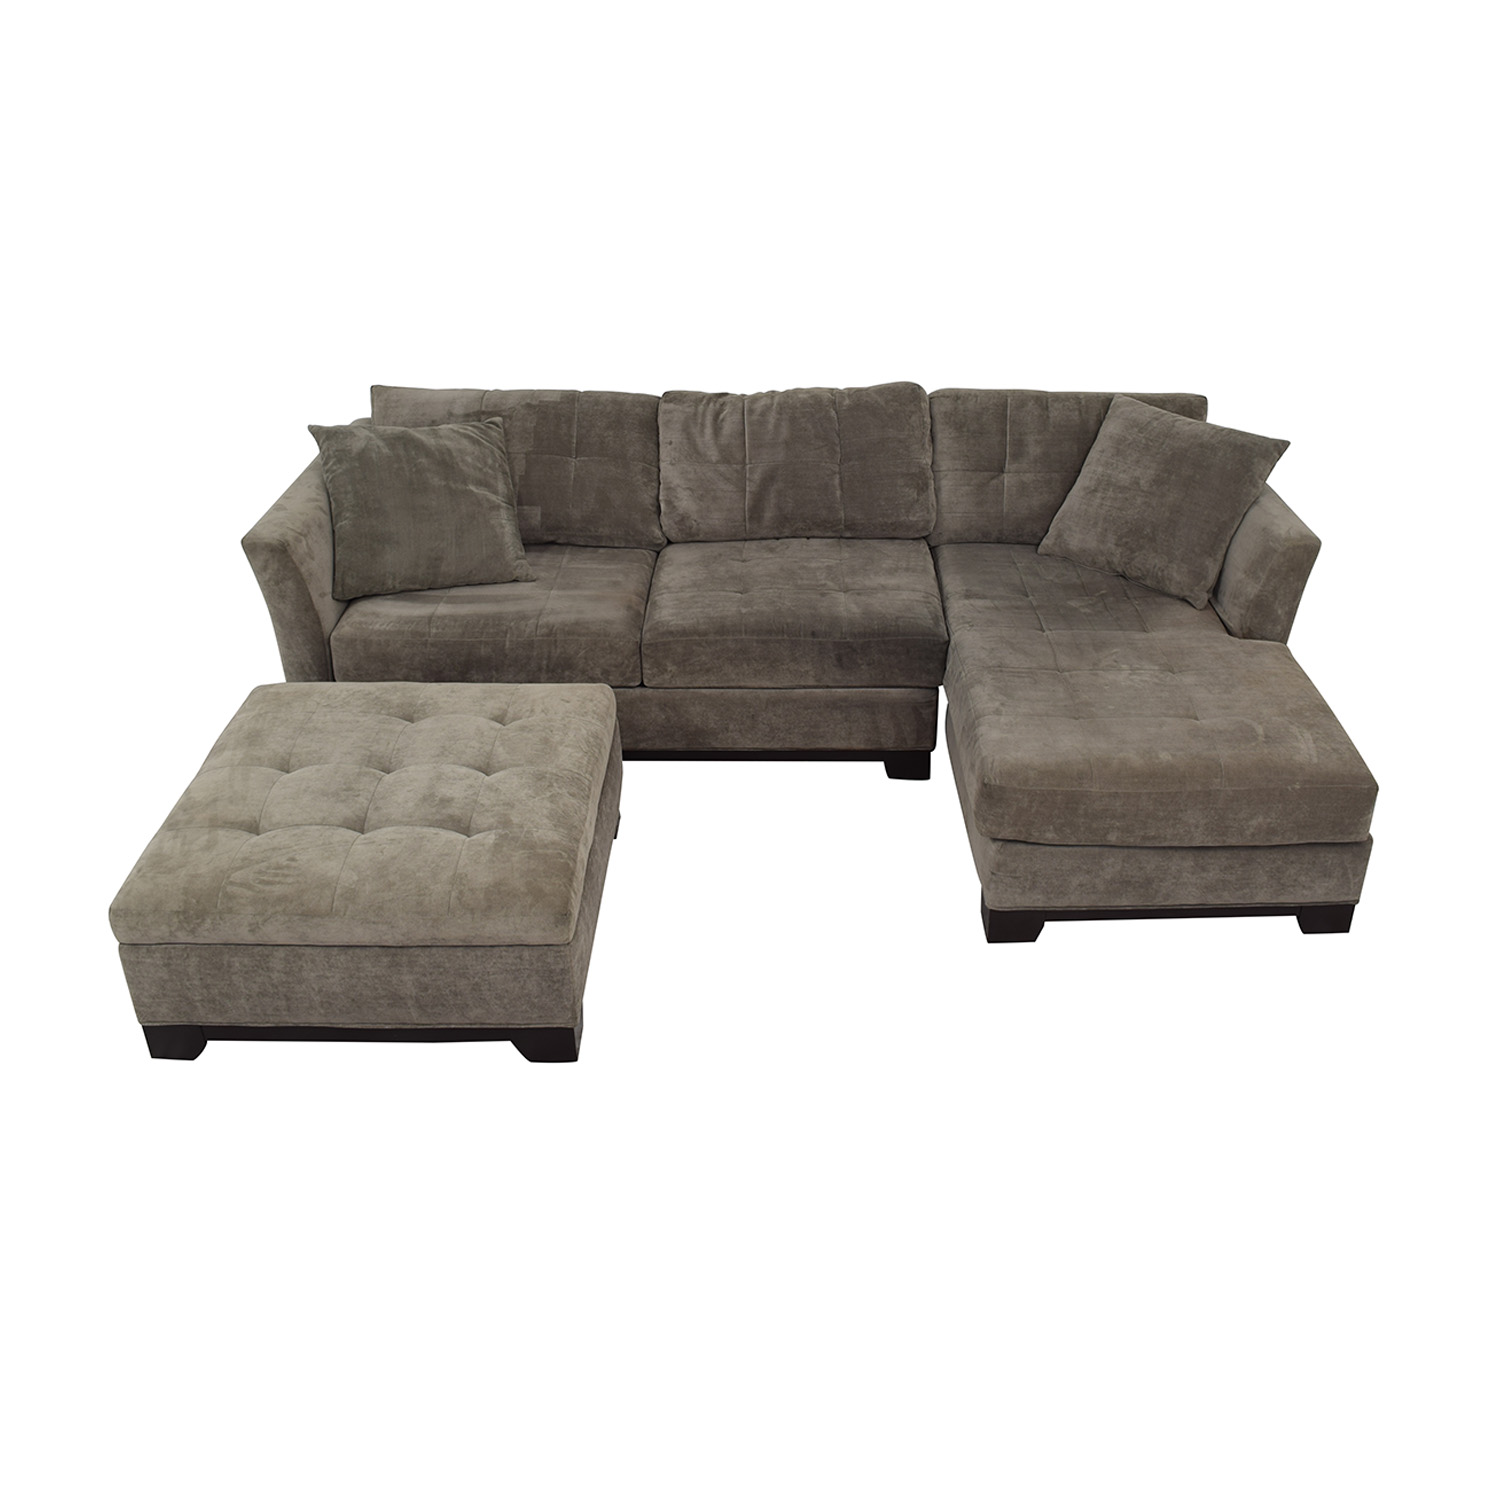 Macy's Macy's Furniture Chaise Couch with Ottoman second hand